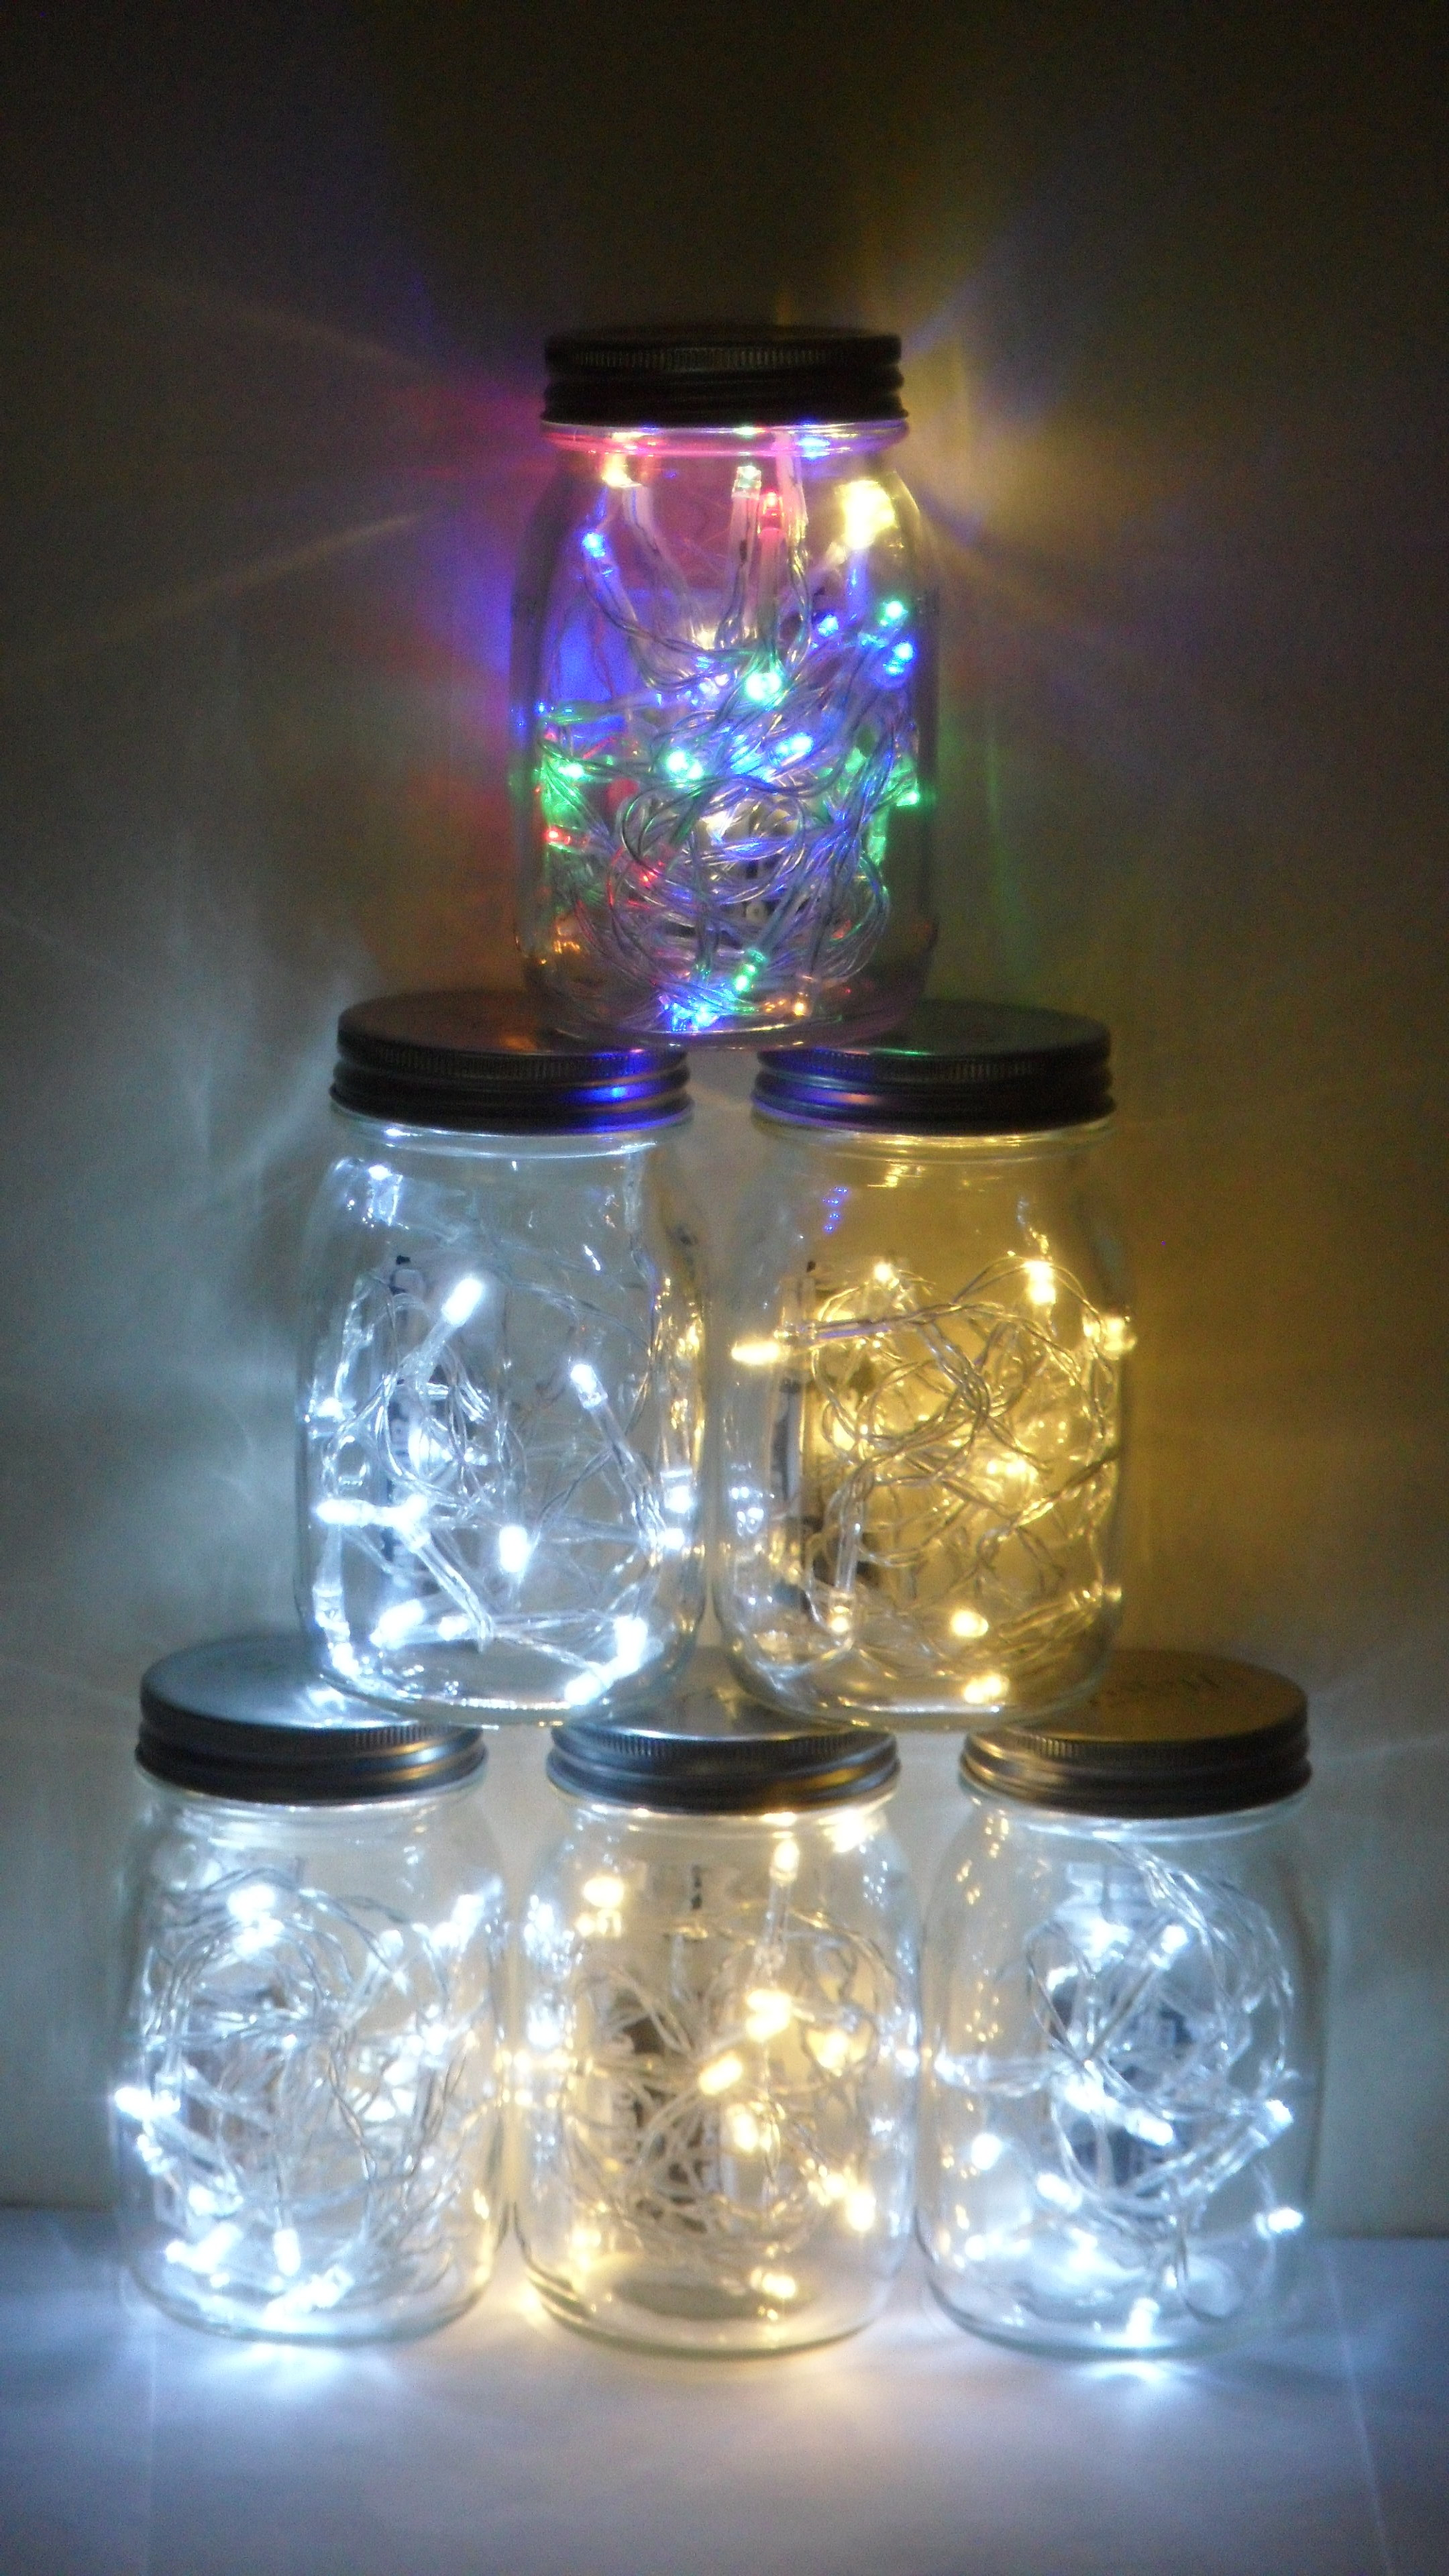 Christmas Tree Made With Led Lights In Jars